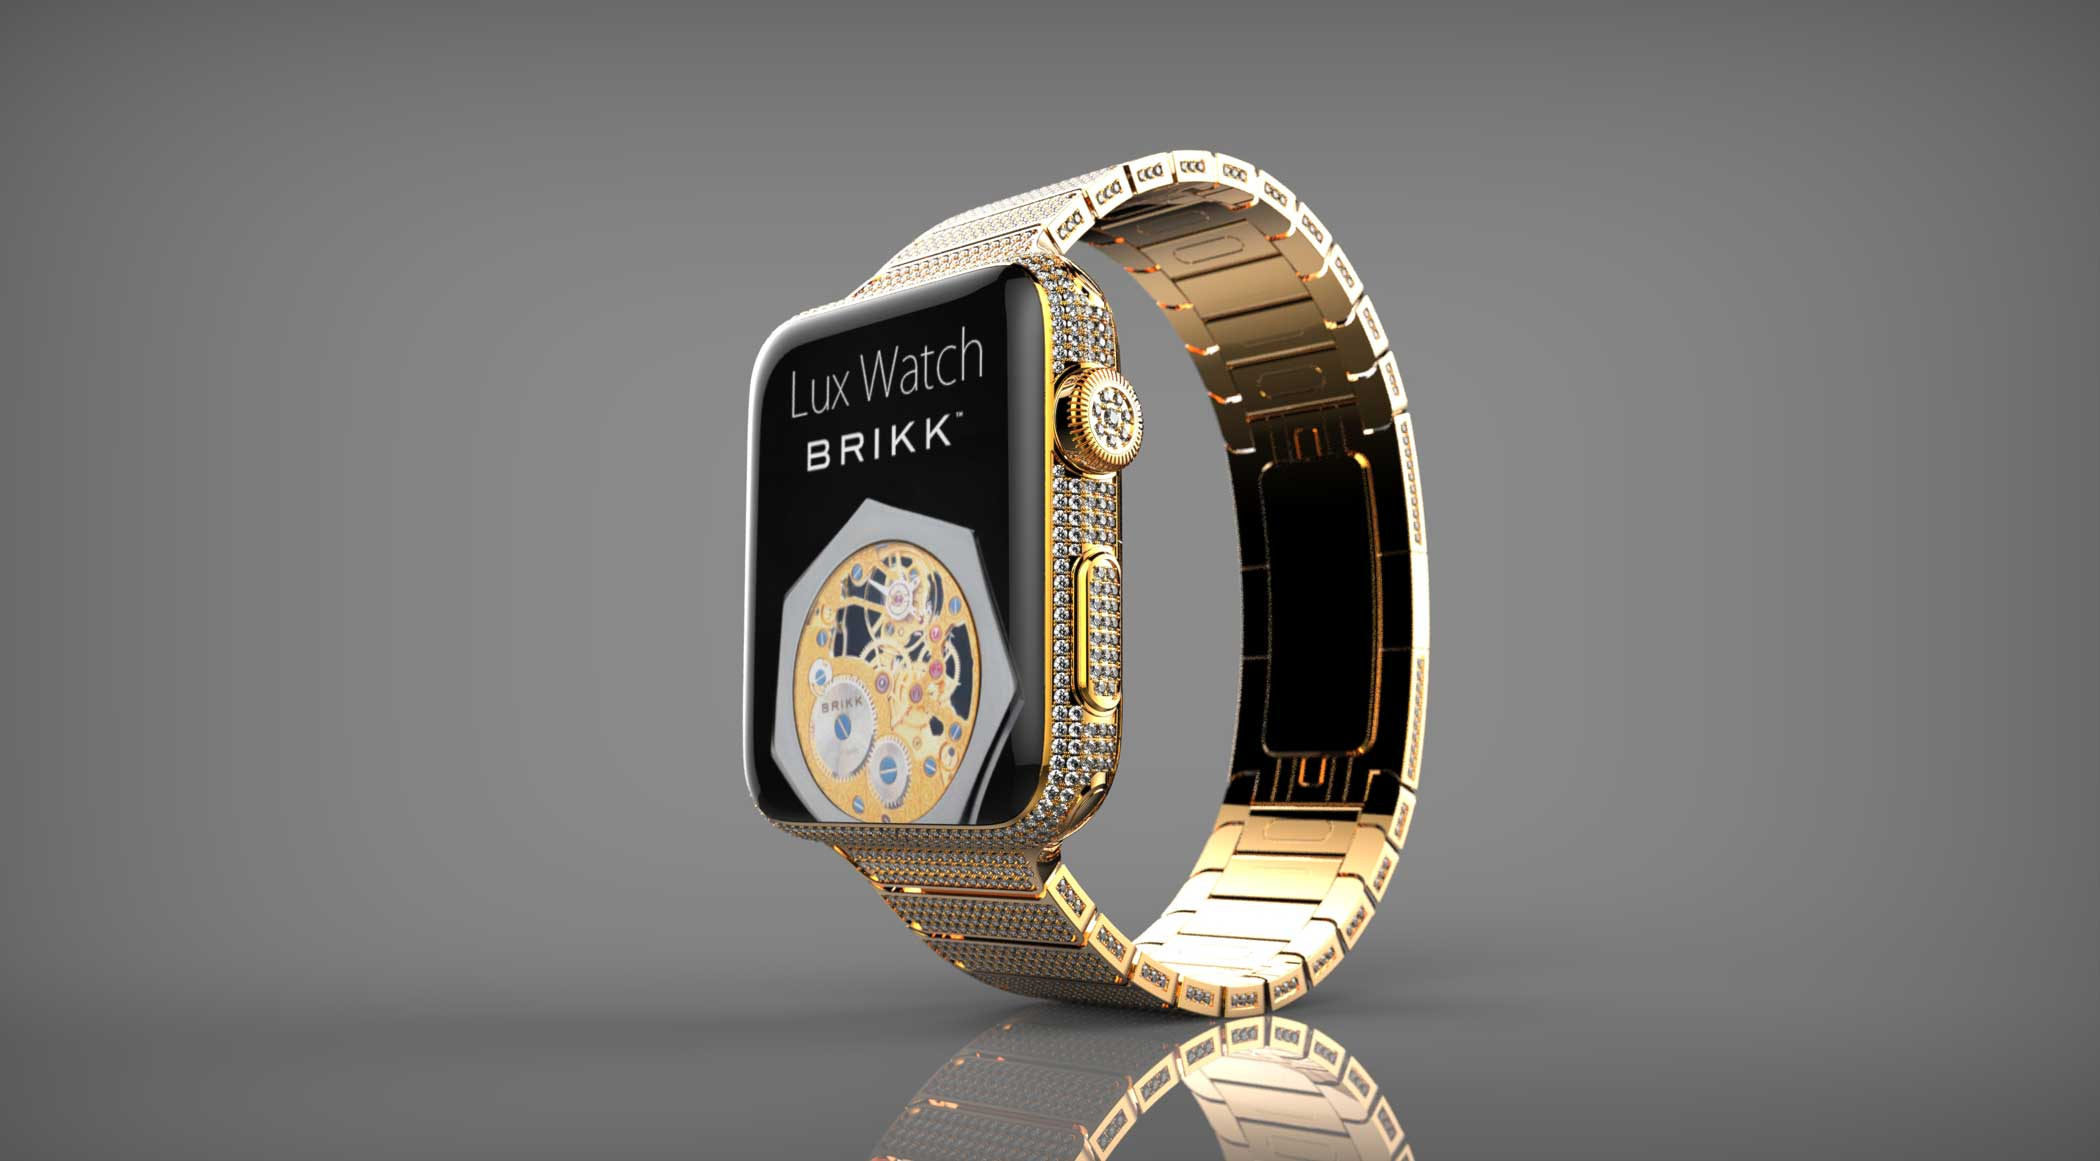 Lux Watch Omni Yellow Gold Brikk's modified Apple Watches will set you back over $100,000, but you'll get an Apple Watch covered in diamonds with yellow or pink gold plating. Brikk has already made a name for itself by selling 24-karat gold iPhone 6 models.